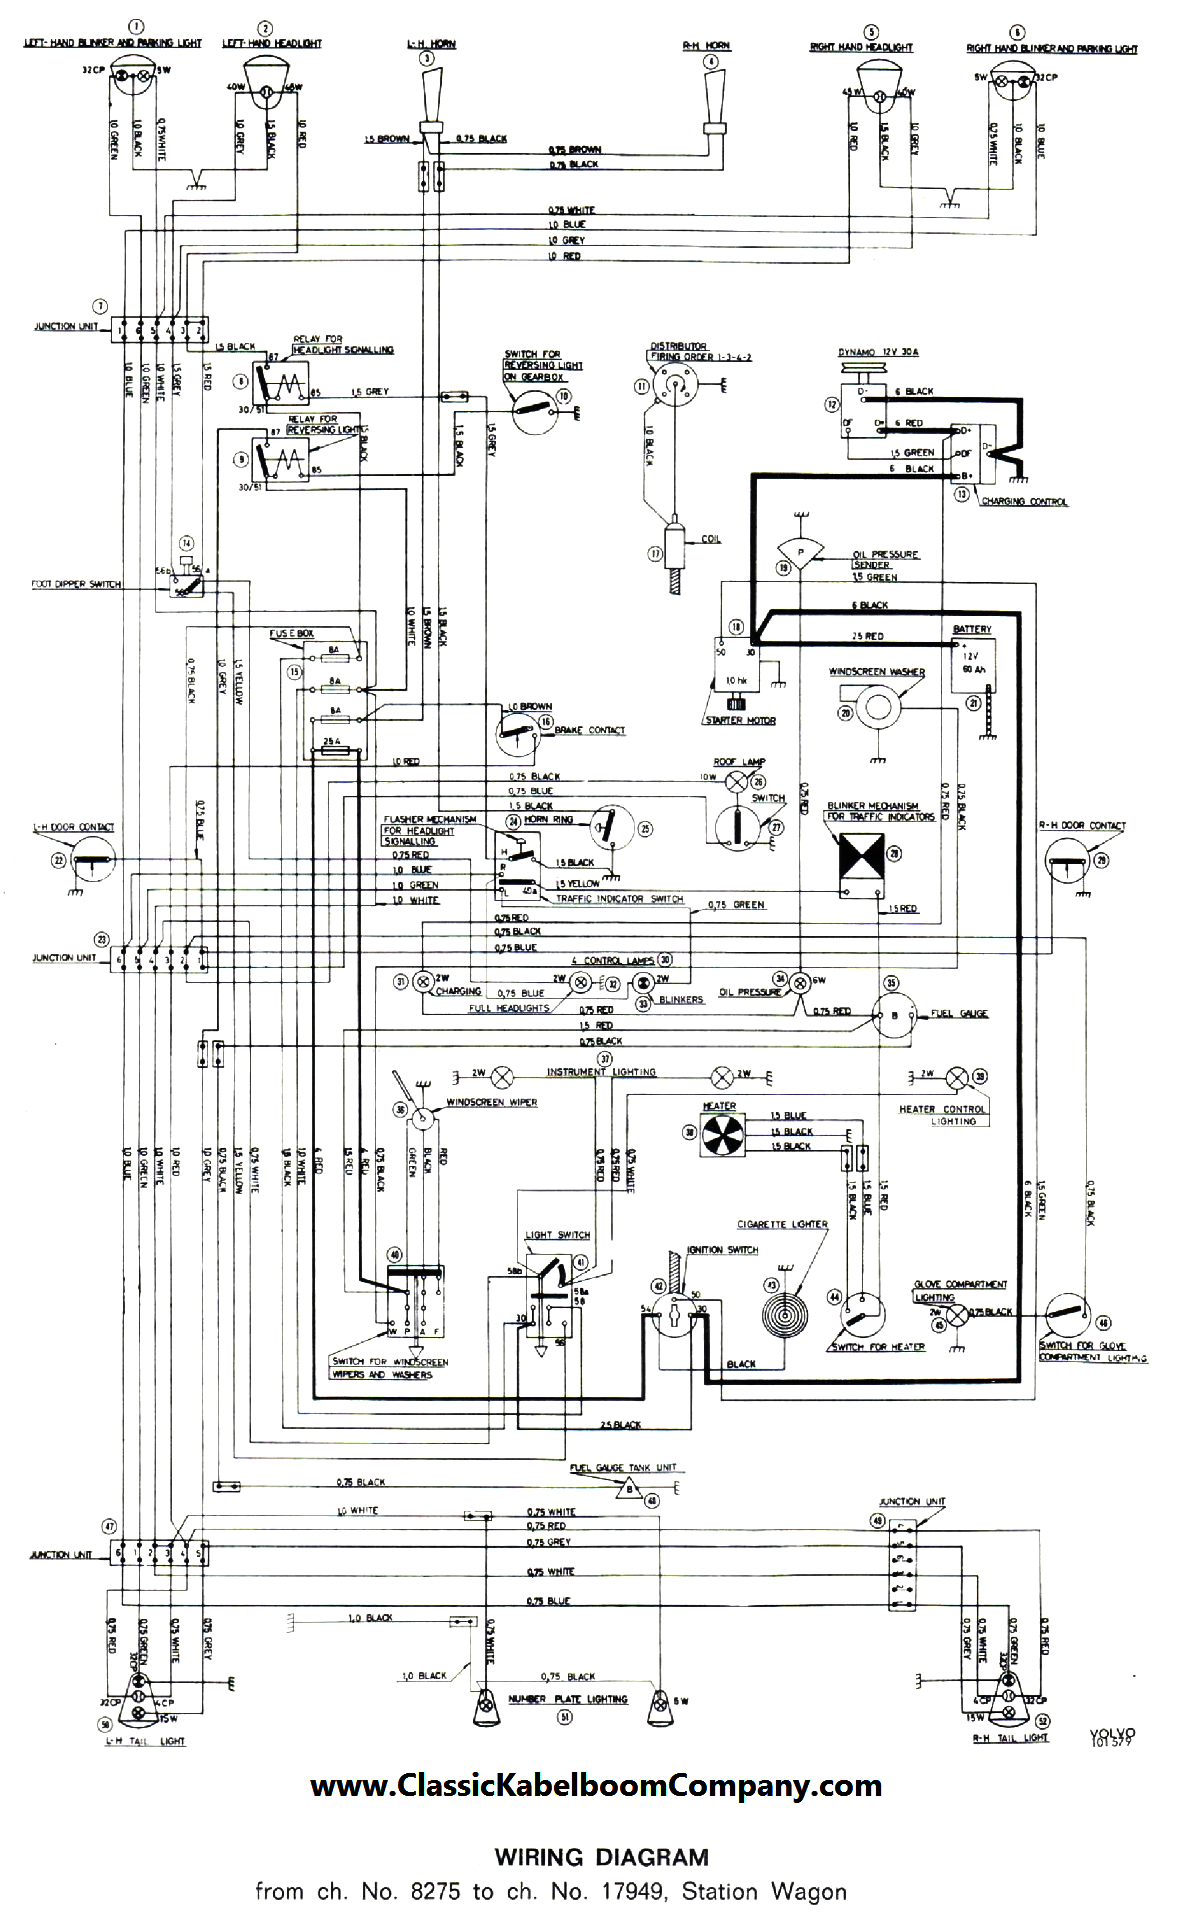 yamaha g3 golf cart wiring diagram with Auto Trans Wiring Diagram on Auto Trans Wiring Diagram in addition Yamaha Golf Cart Solenoid moreover 208 in addition Yamaha Jn6 Wiring Diagram as well Melex 36 Volt Golf Cart Wiring Diagram.